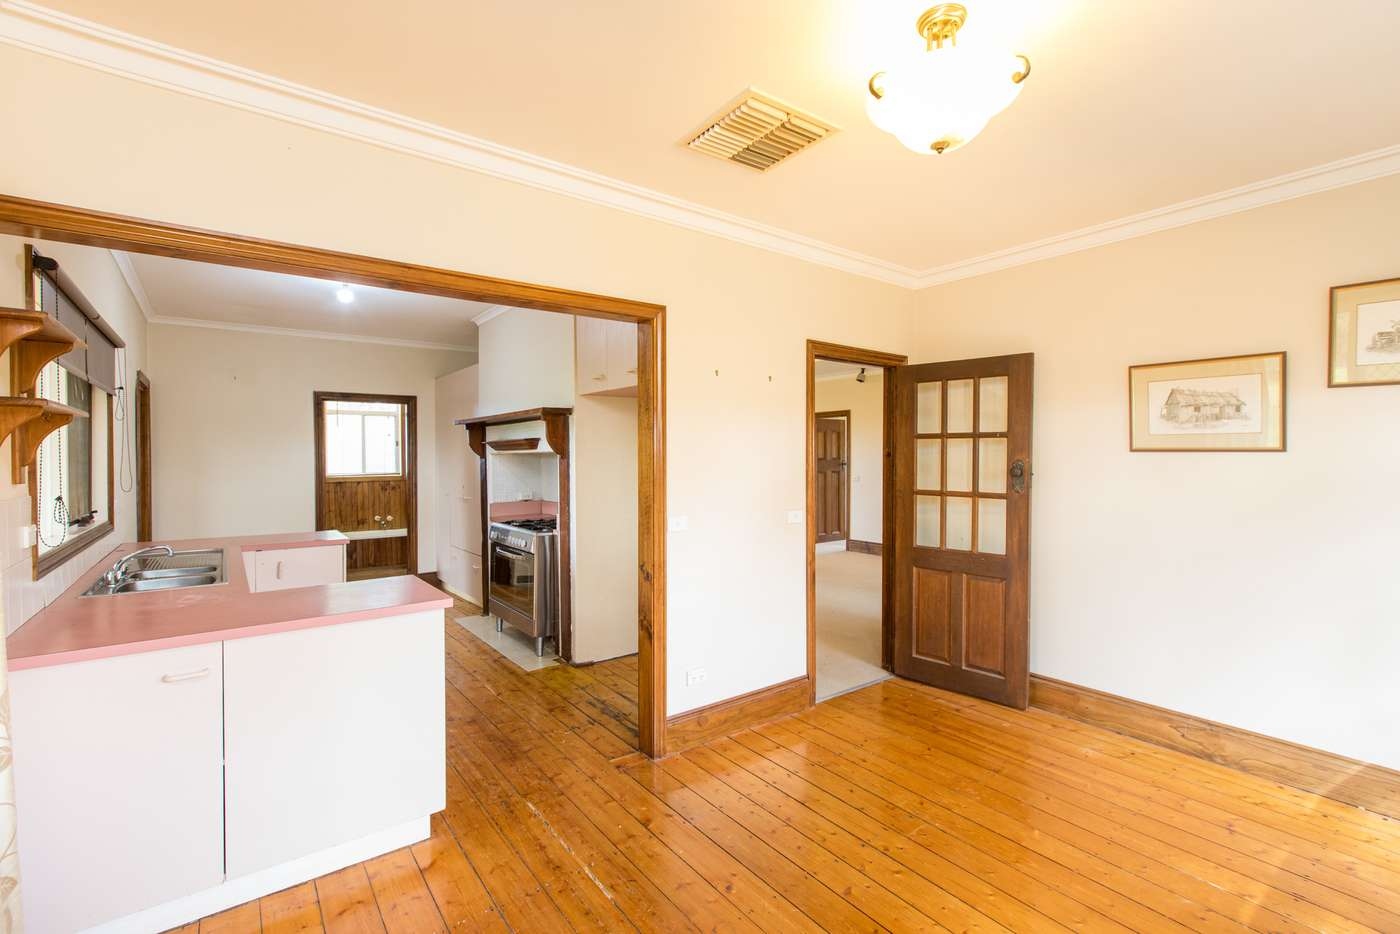 Fifth view of Homely house listing, 63 Yelta Road, Merbein VIC 3505